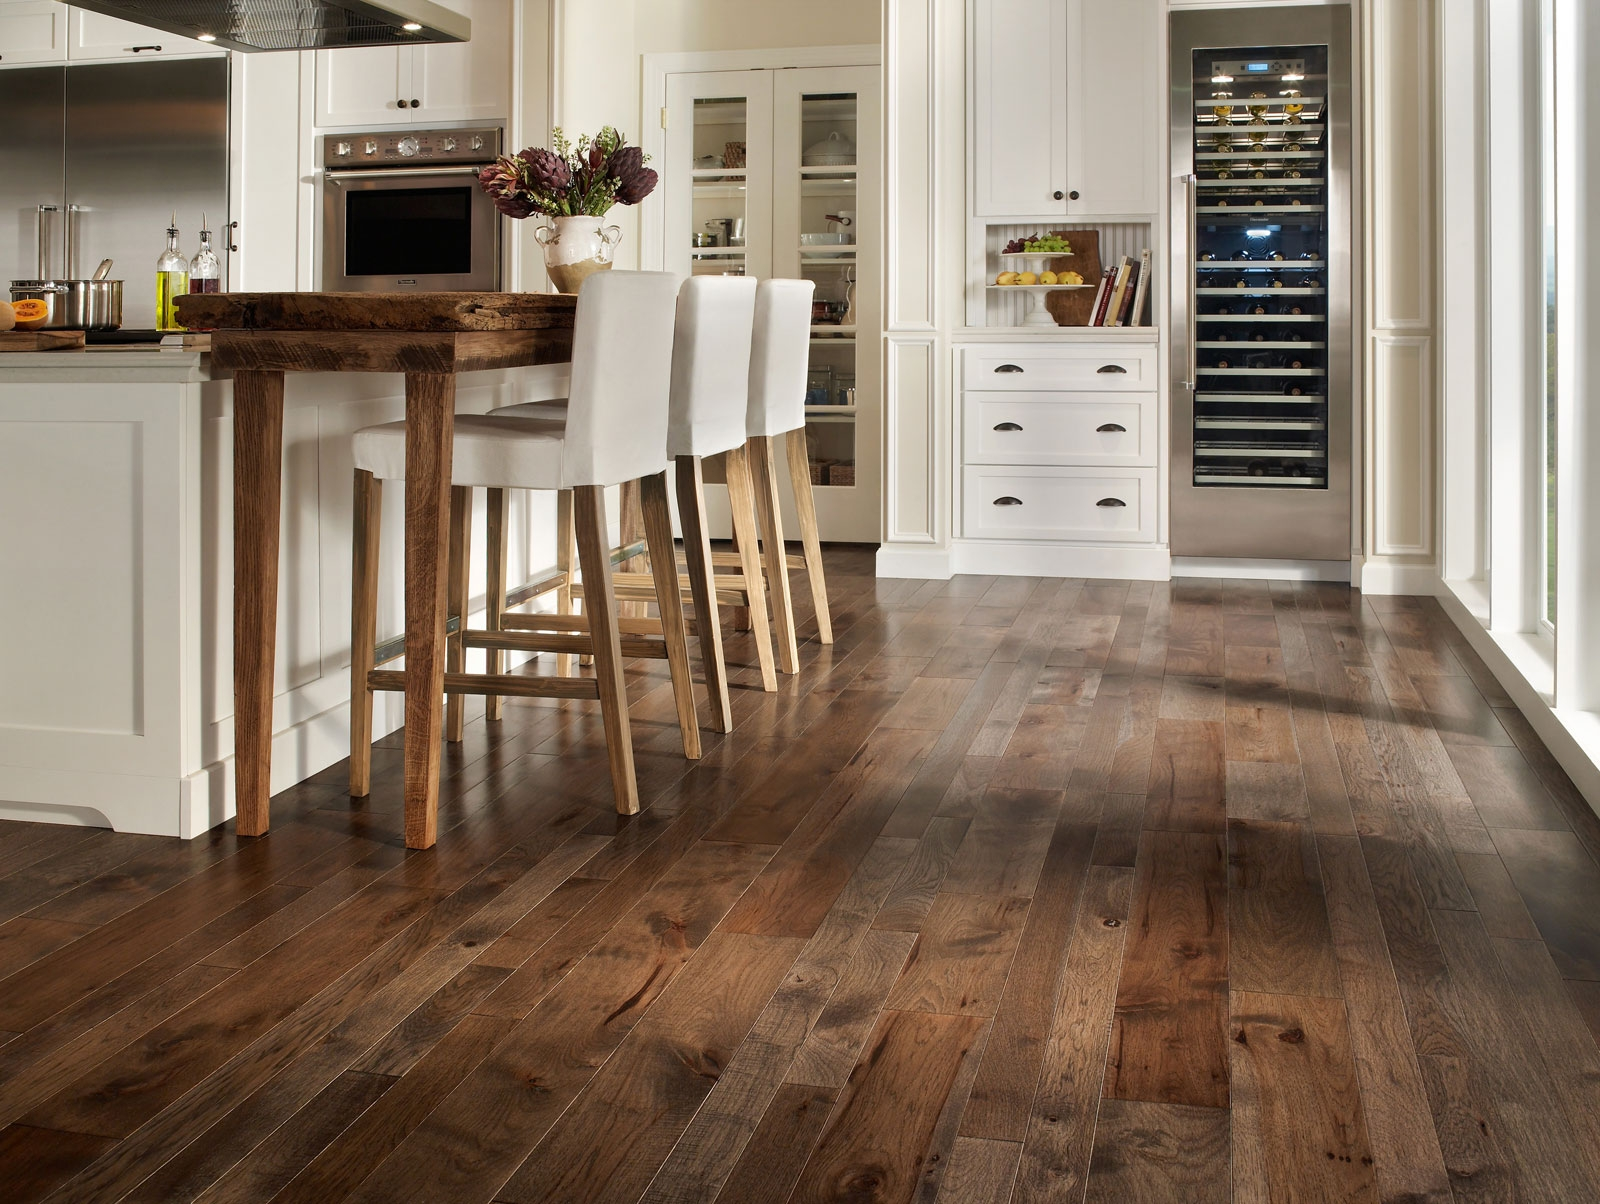 Most Popular Wood Floor Color 2015